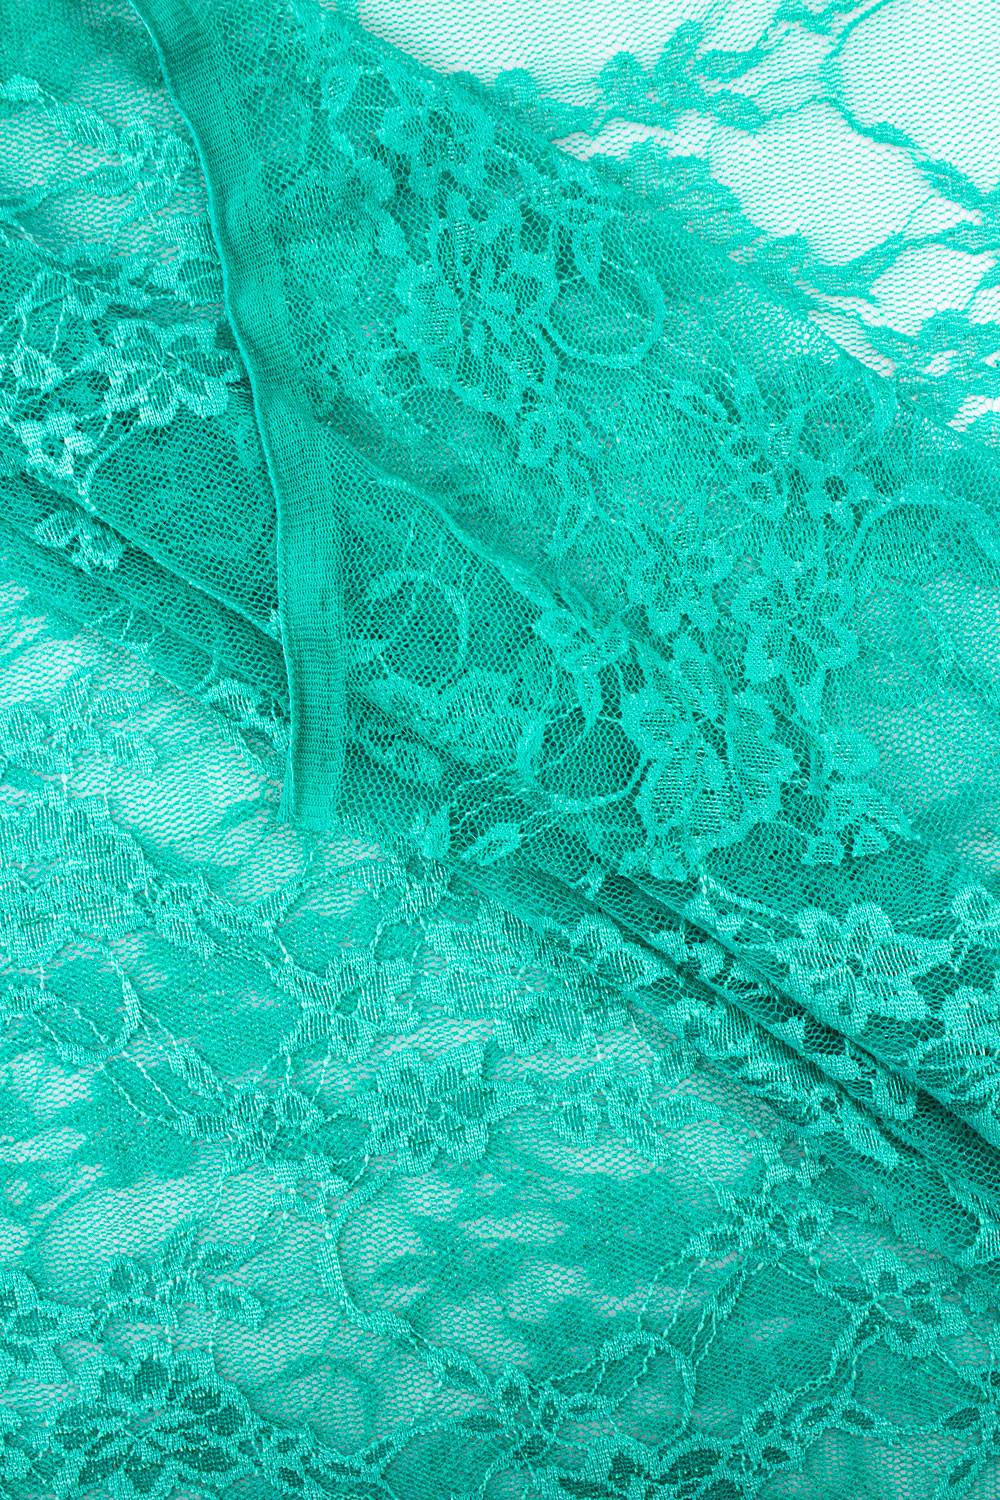 Fabric - Lace - Turquoise - 140 cm - 70 gm/2